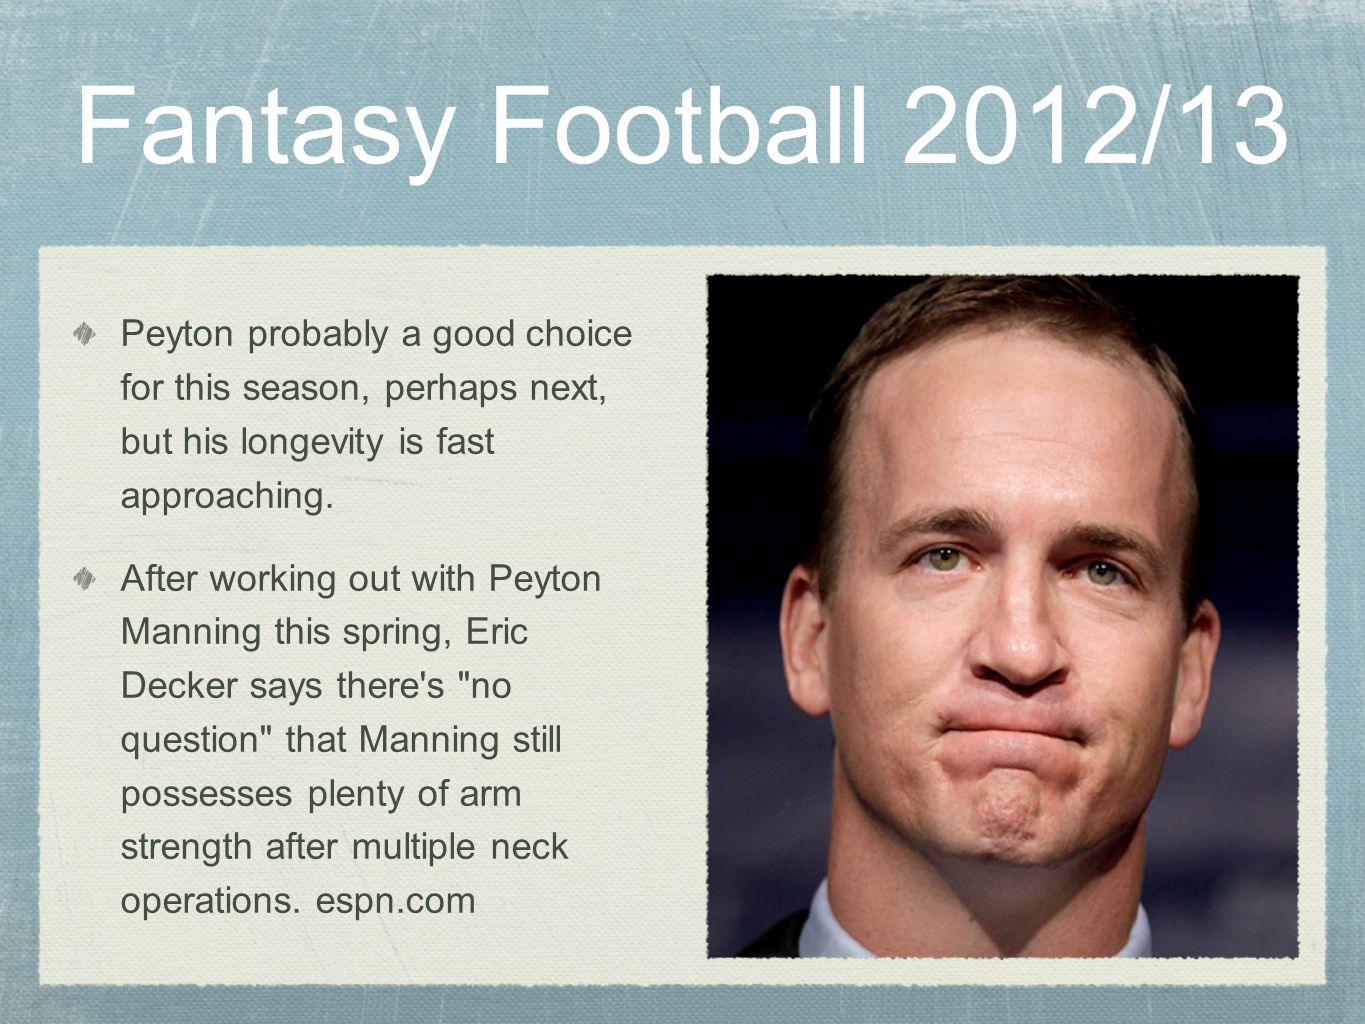 Fantasy Football 2012/13Peyton probably a good choice for this season, perhaps next, but his longevity is fast approaching.